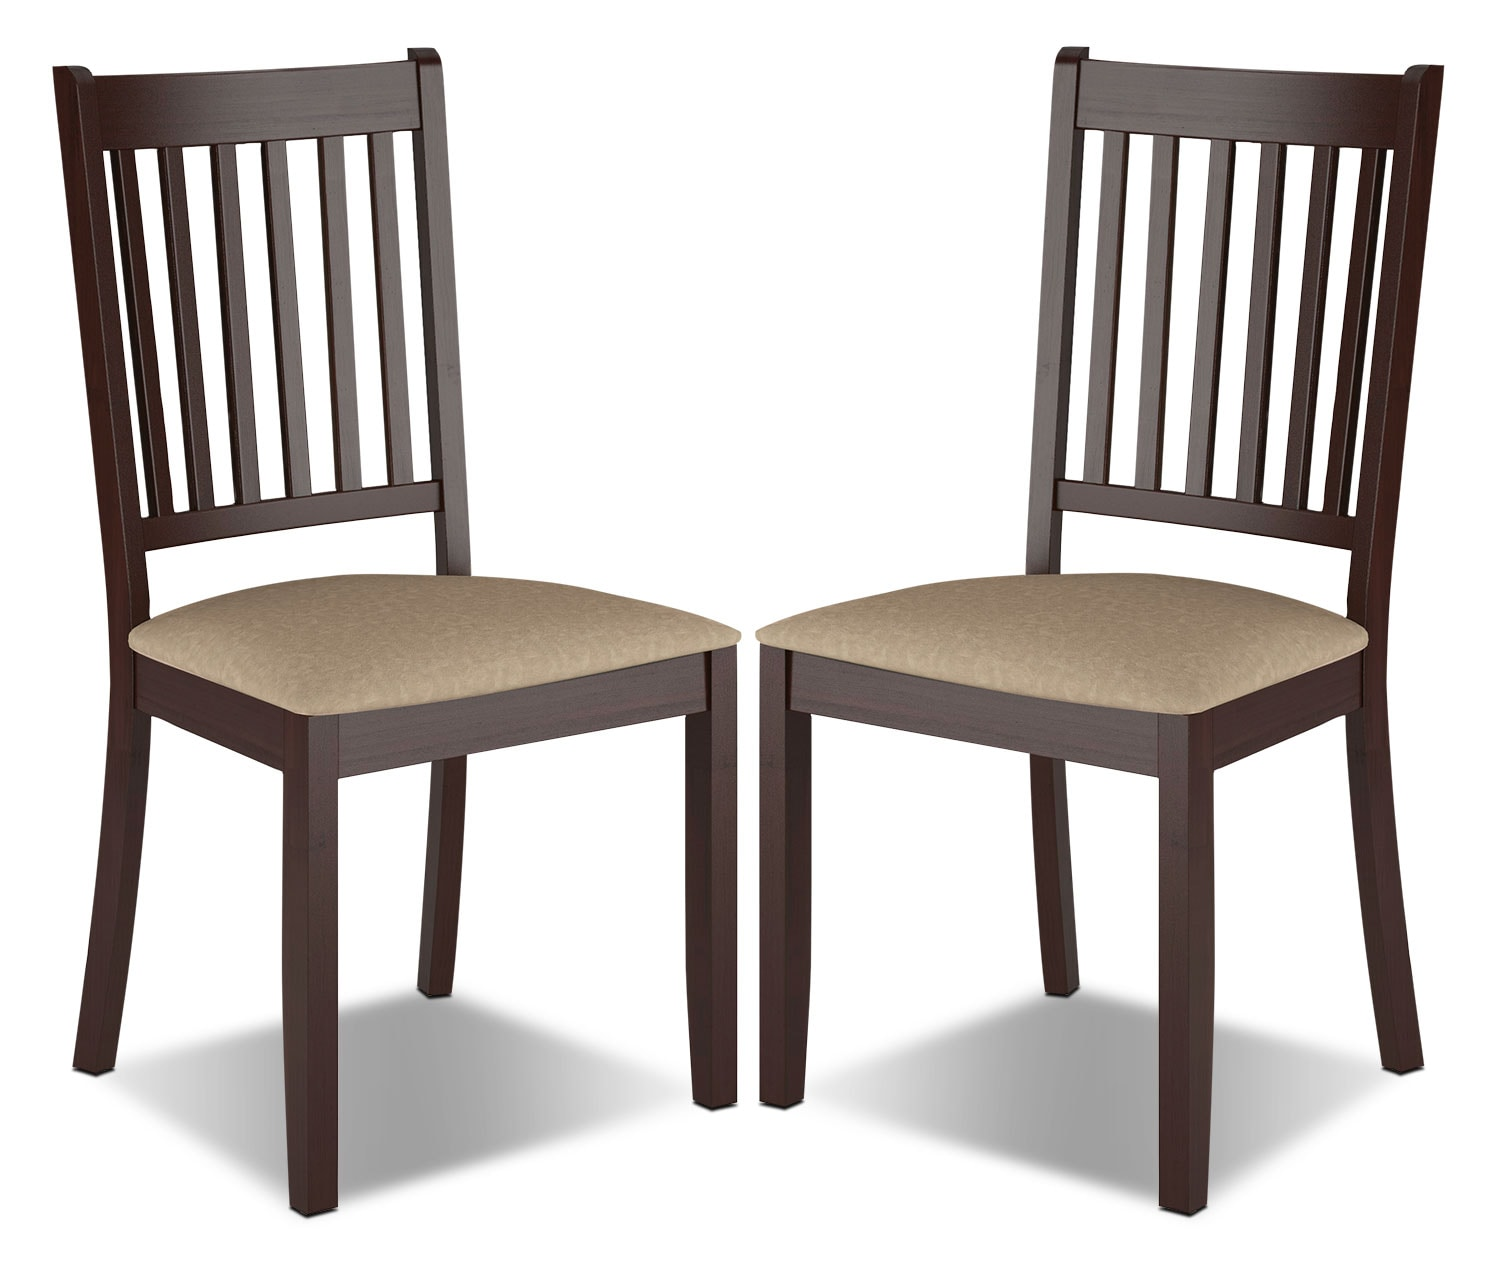 Atwood Dining Chair with Microfibre Seat, Set of 2 – Beige